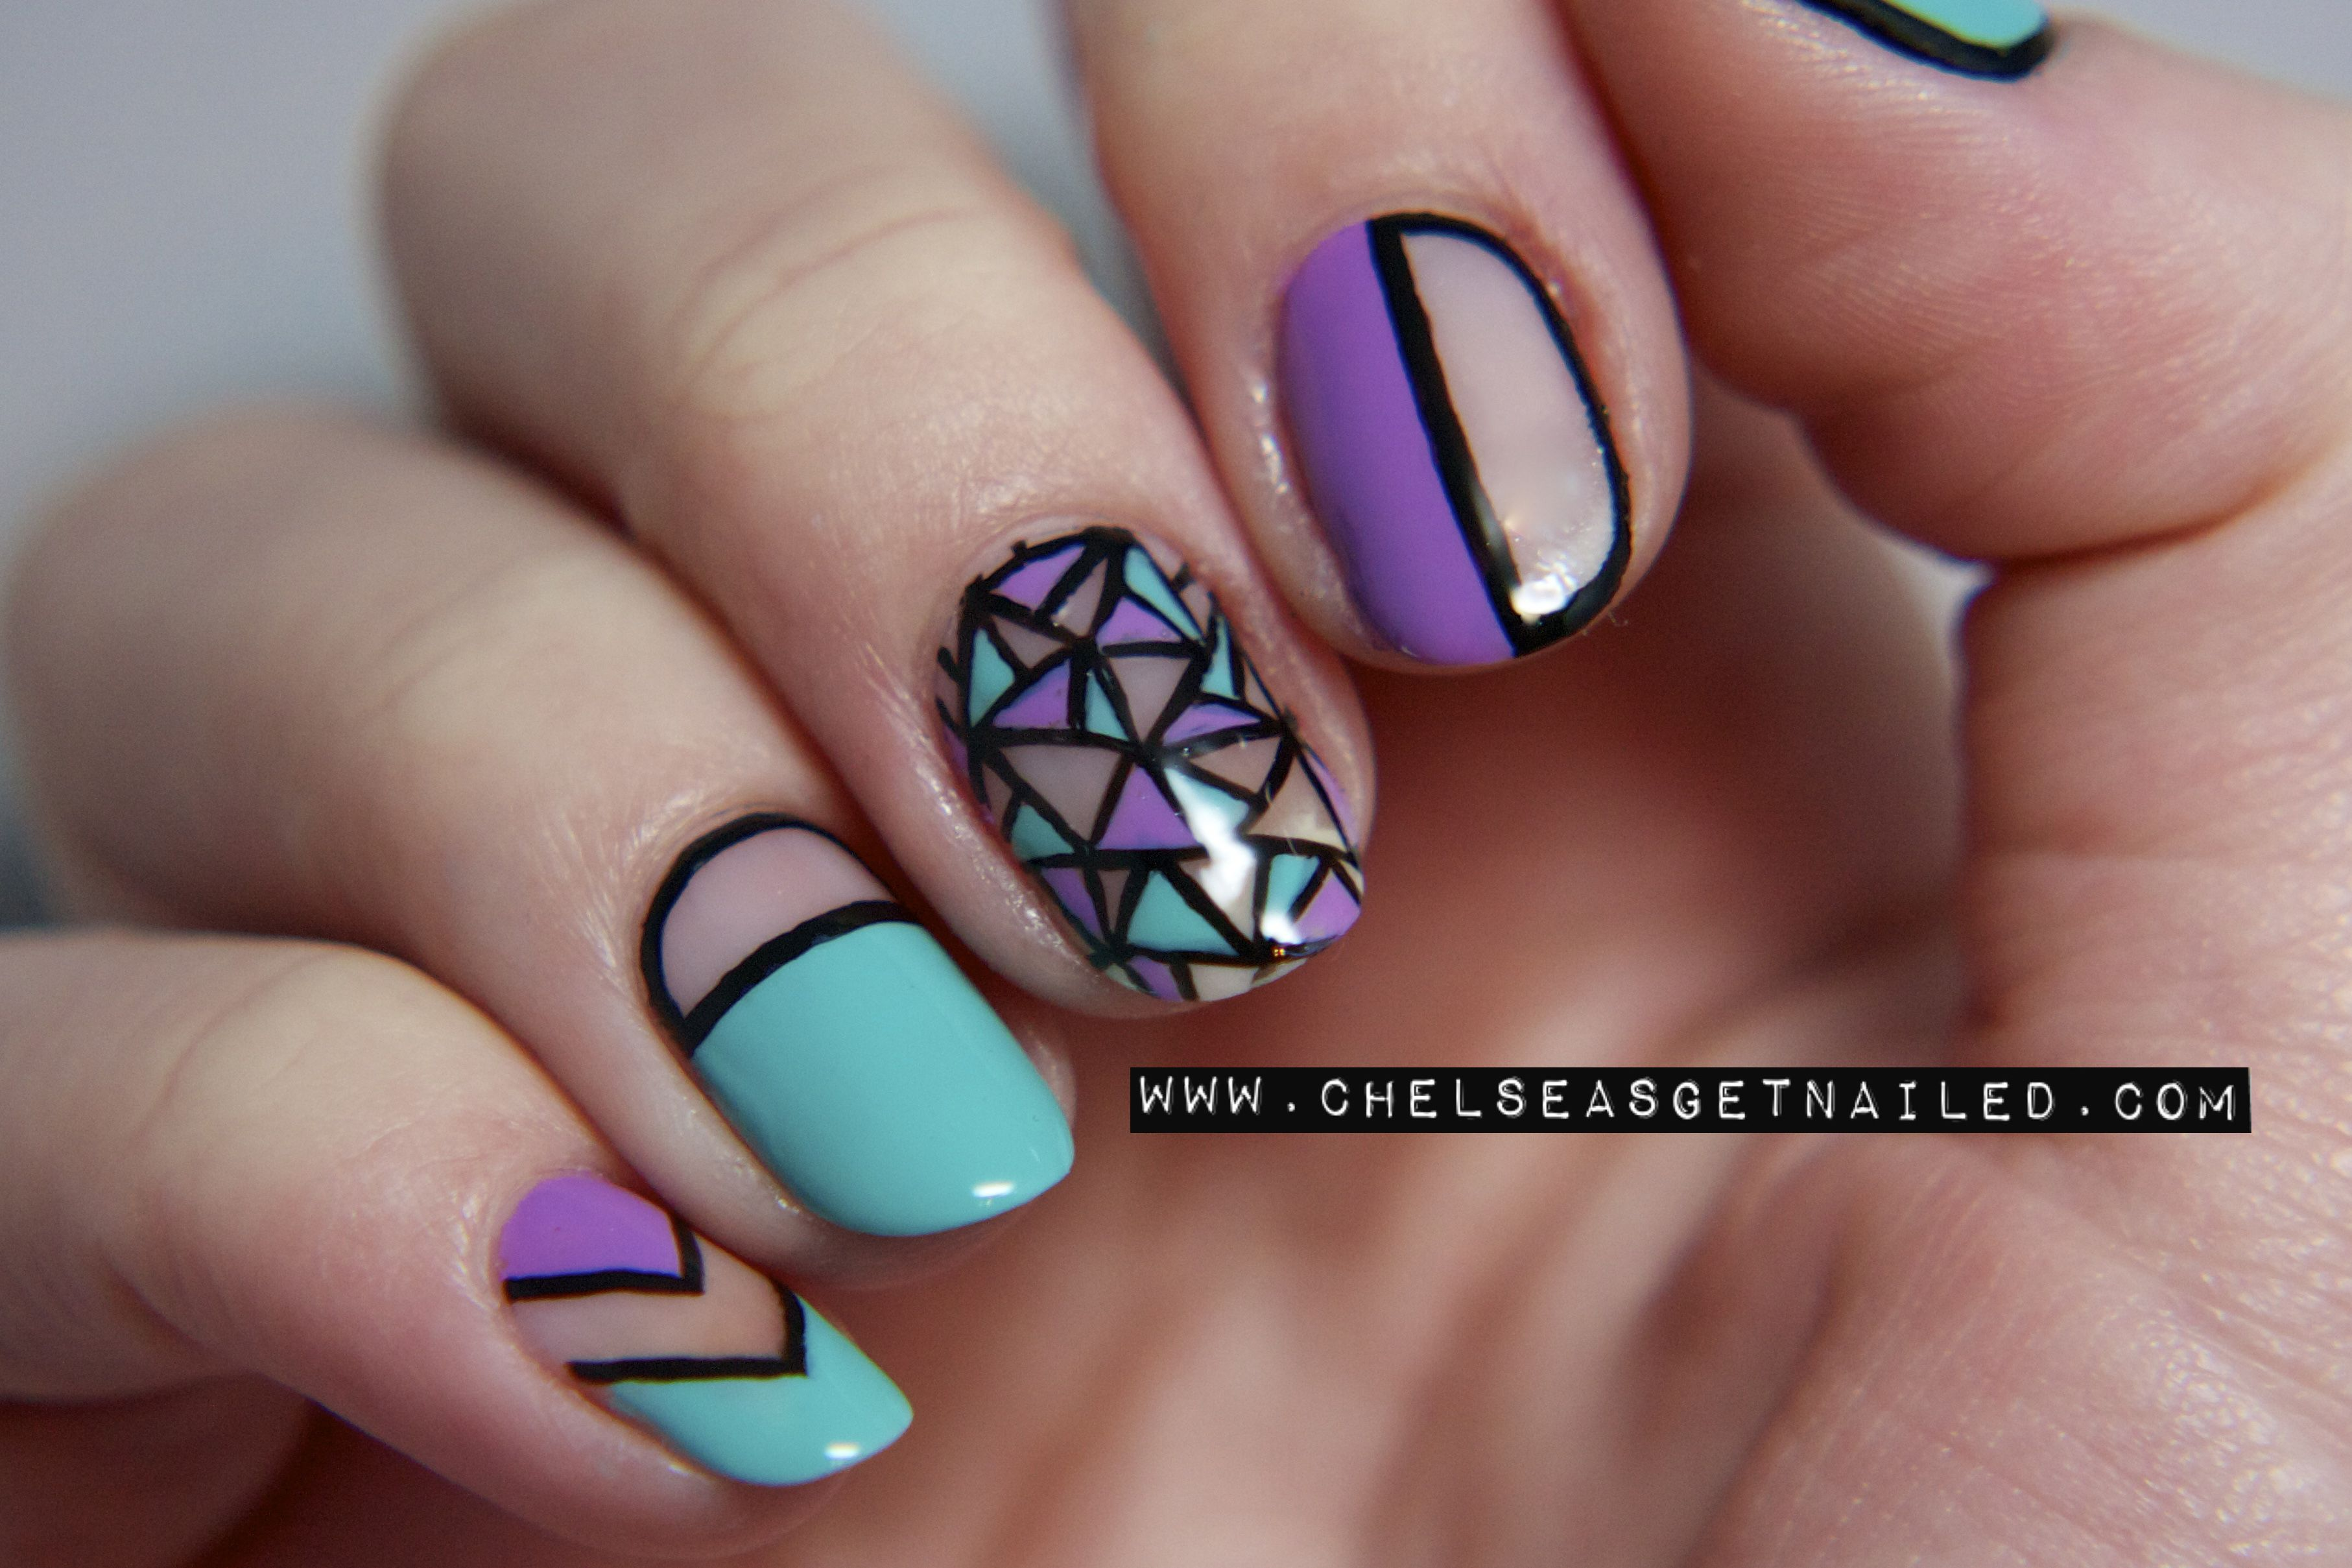 Cut Out Nails www.chelseasgetnailed.com | |CHELSEAQUEEN.COM ...